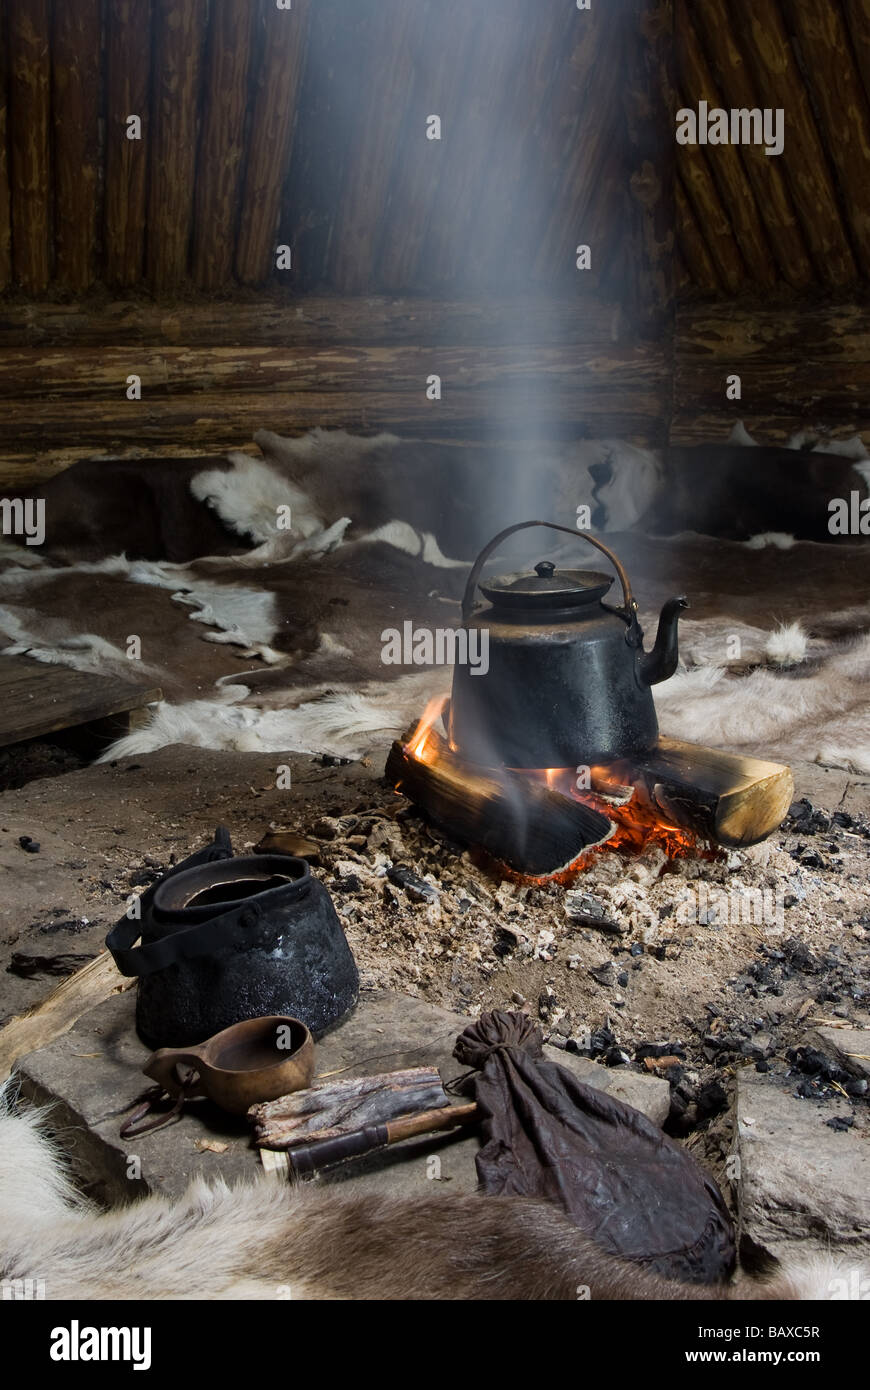 Traditonal way of making Sami coffee with reindeer meat, in a Gåhtie (traditional Sami house) in Båtsuoj - Stock Image